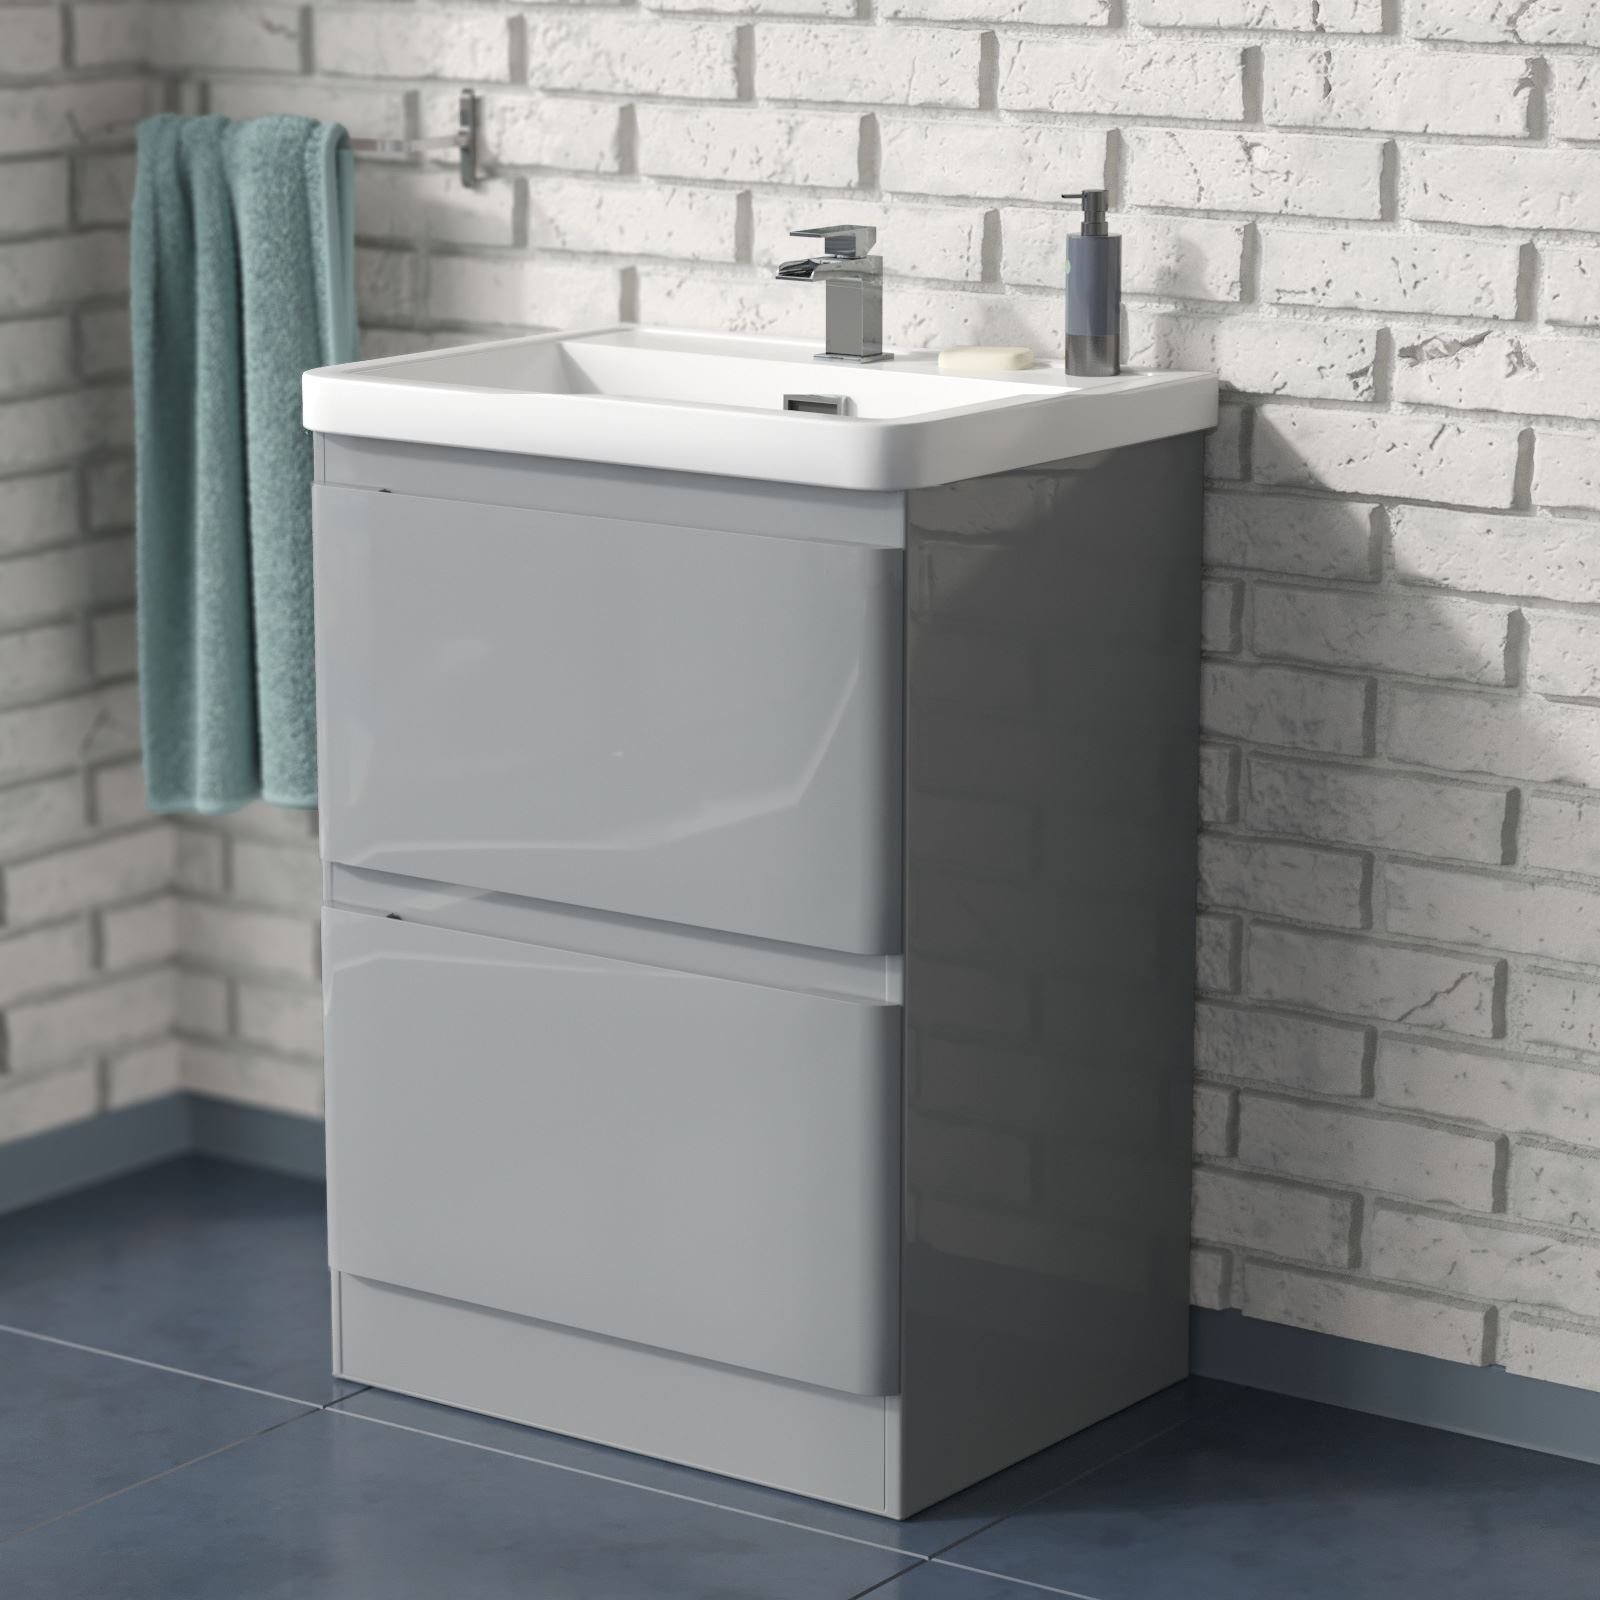 Lakas Freestanding Mdf Bathroom Light Grey 2 Drawer Basin Sink Vanity Unit 600mm Ebay